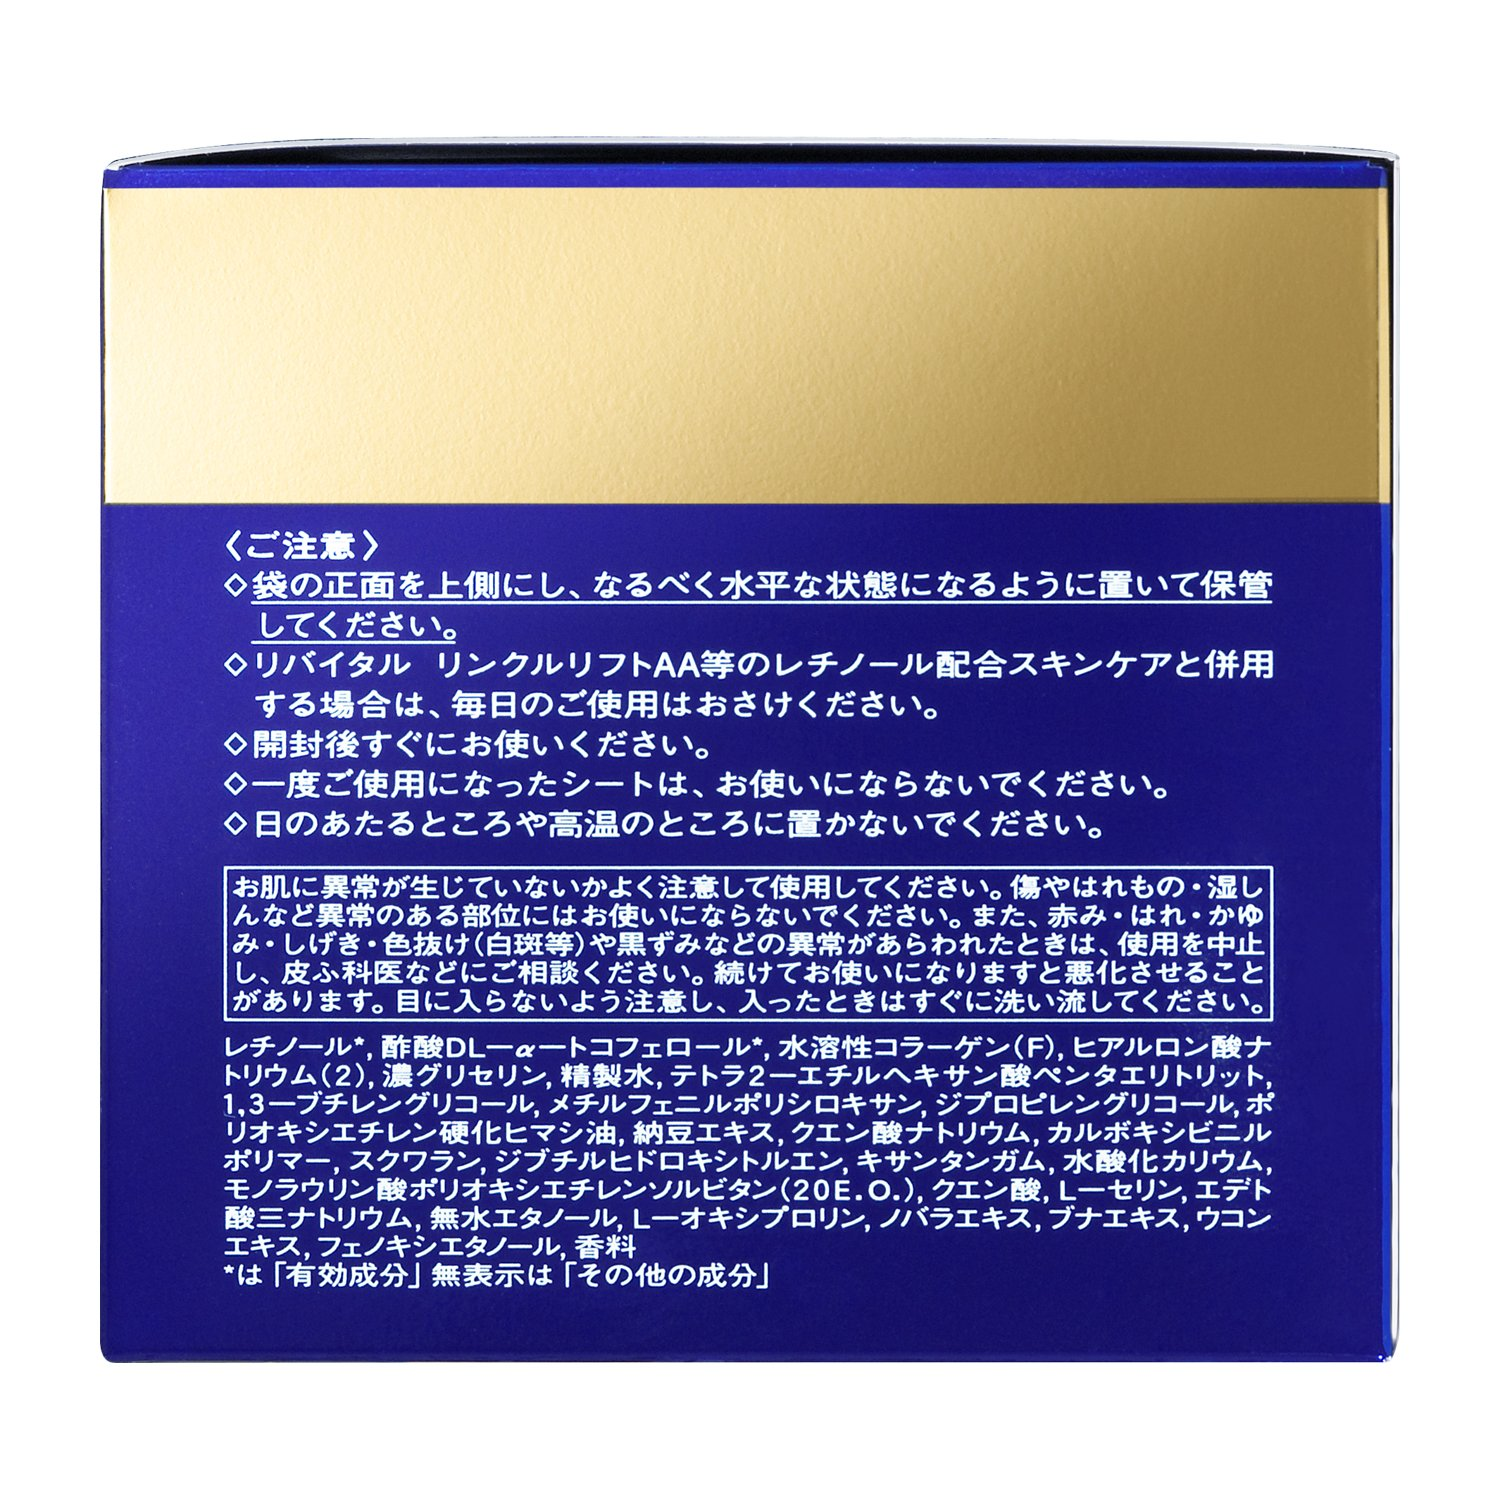 Shiseido Revital Wrinklelift Retino Science Aa Eye Mask 12 Pairs by Shiseido (Image #5)